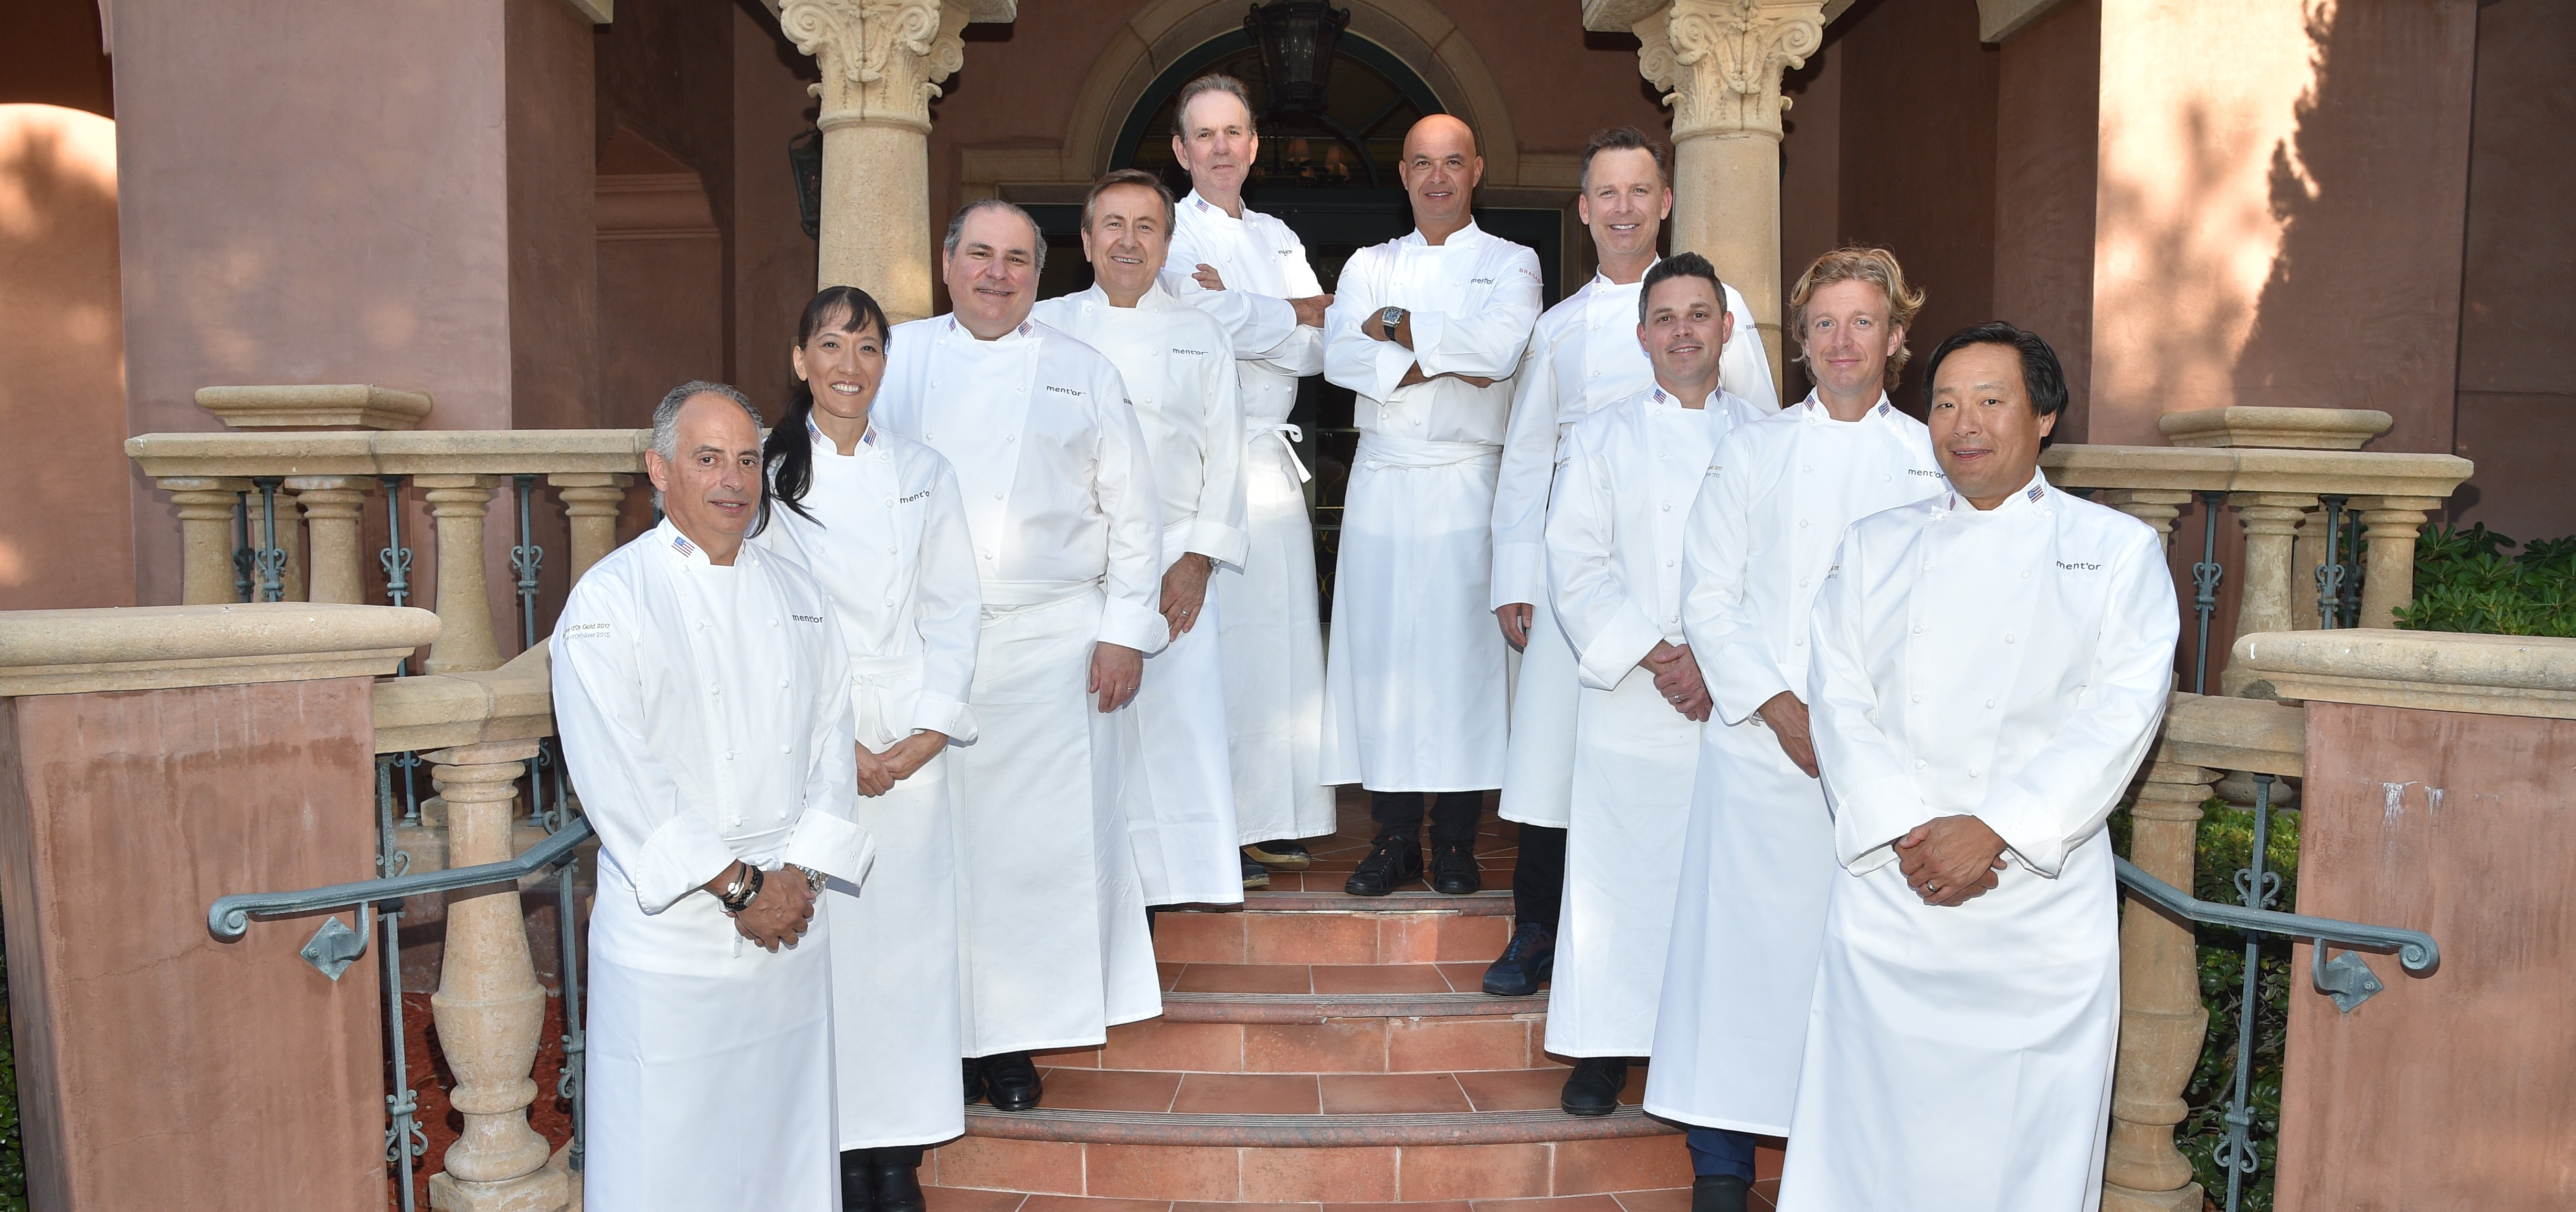 Robb Report Culinary Masters 2020 Chef Thomas Keller Chef Daniel Boulud Chef Jerome Bocuse